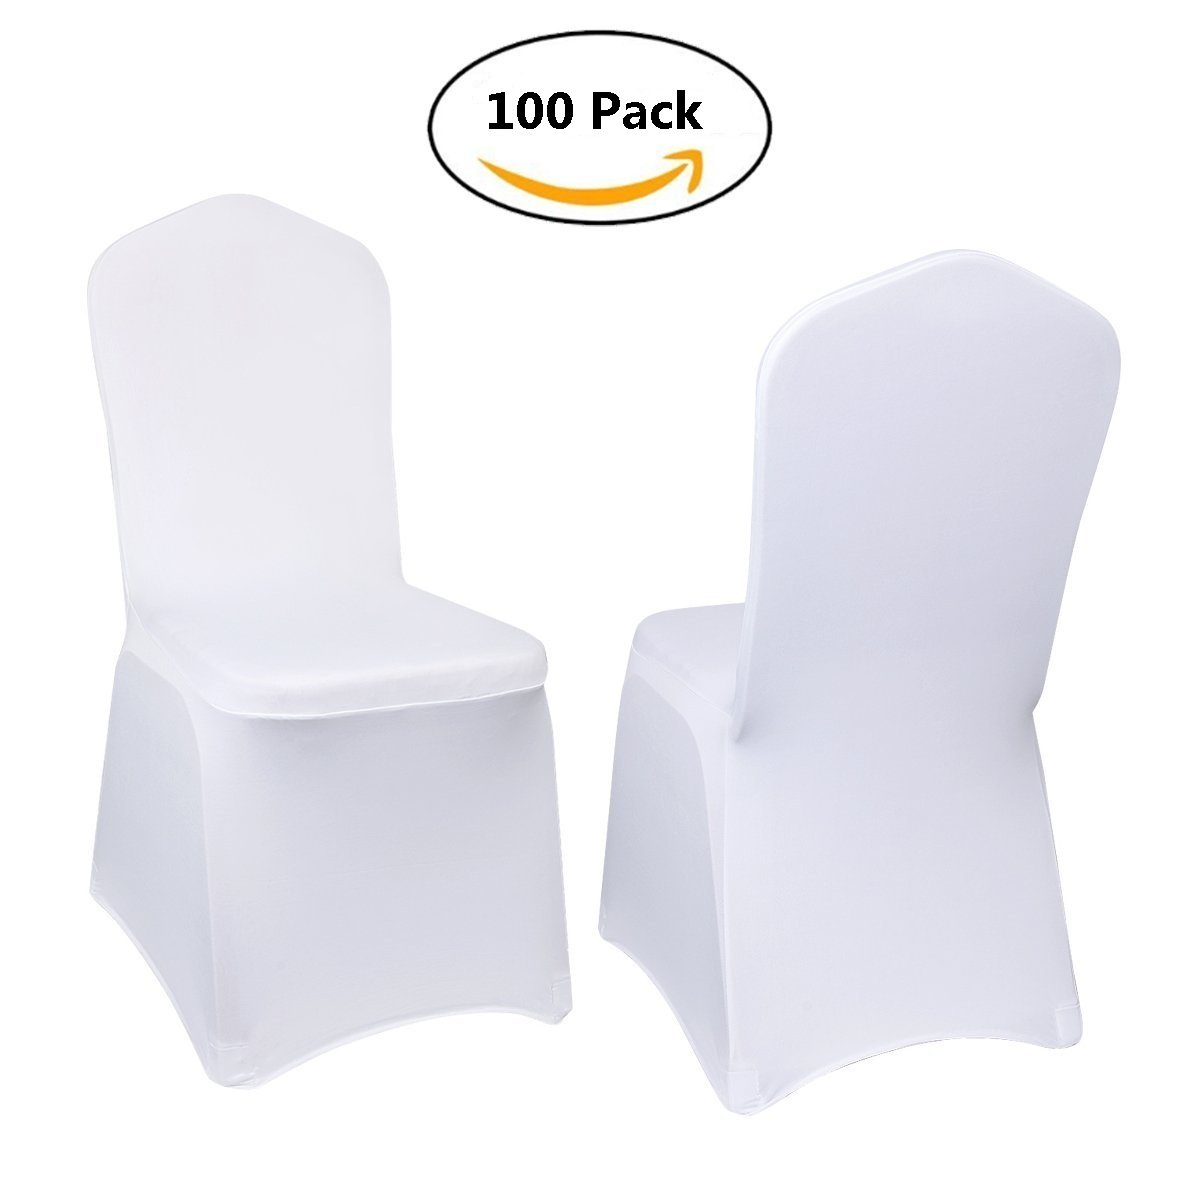 Stretch Polyester Spandex Dining Chair Cover for Wedding or Party Use,White (100)